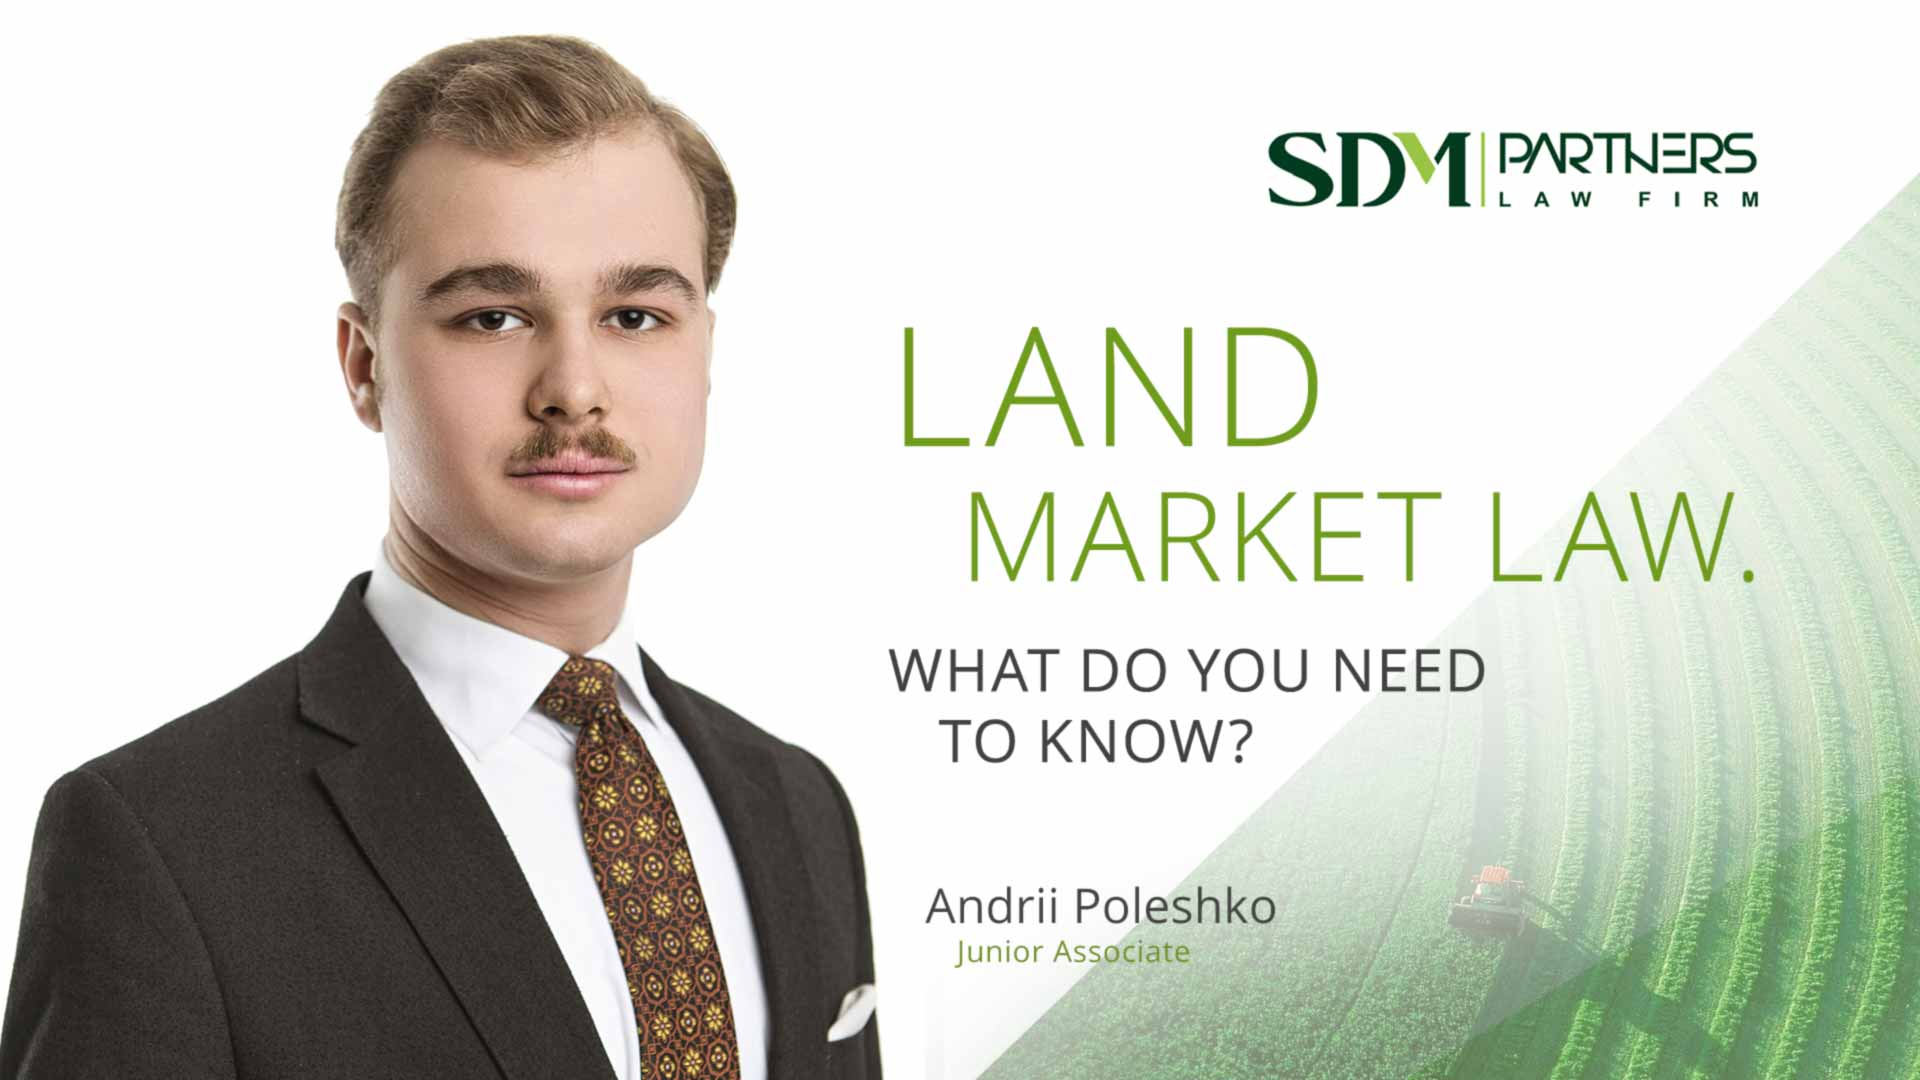 Land Market Law. What do you need to know?